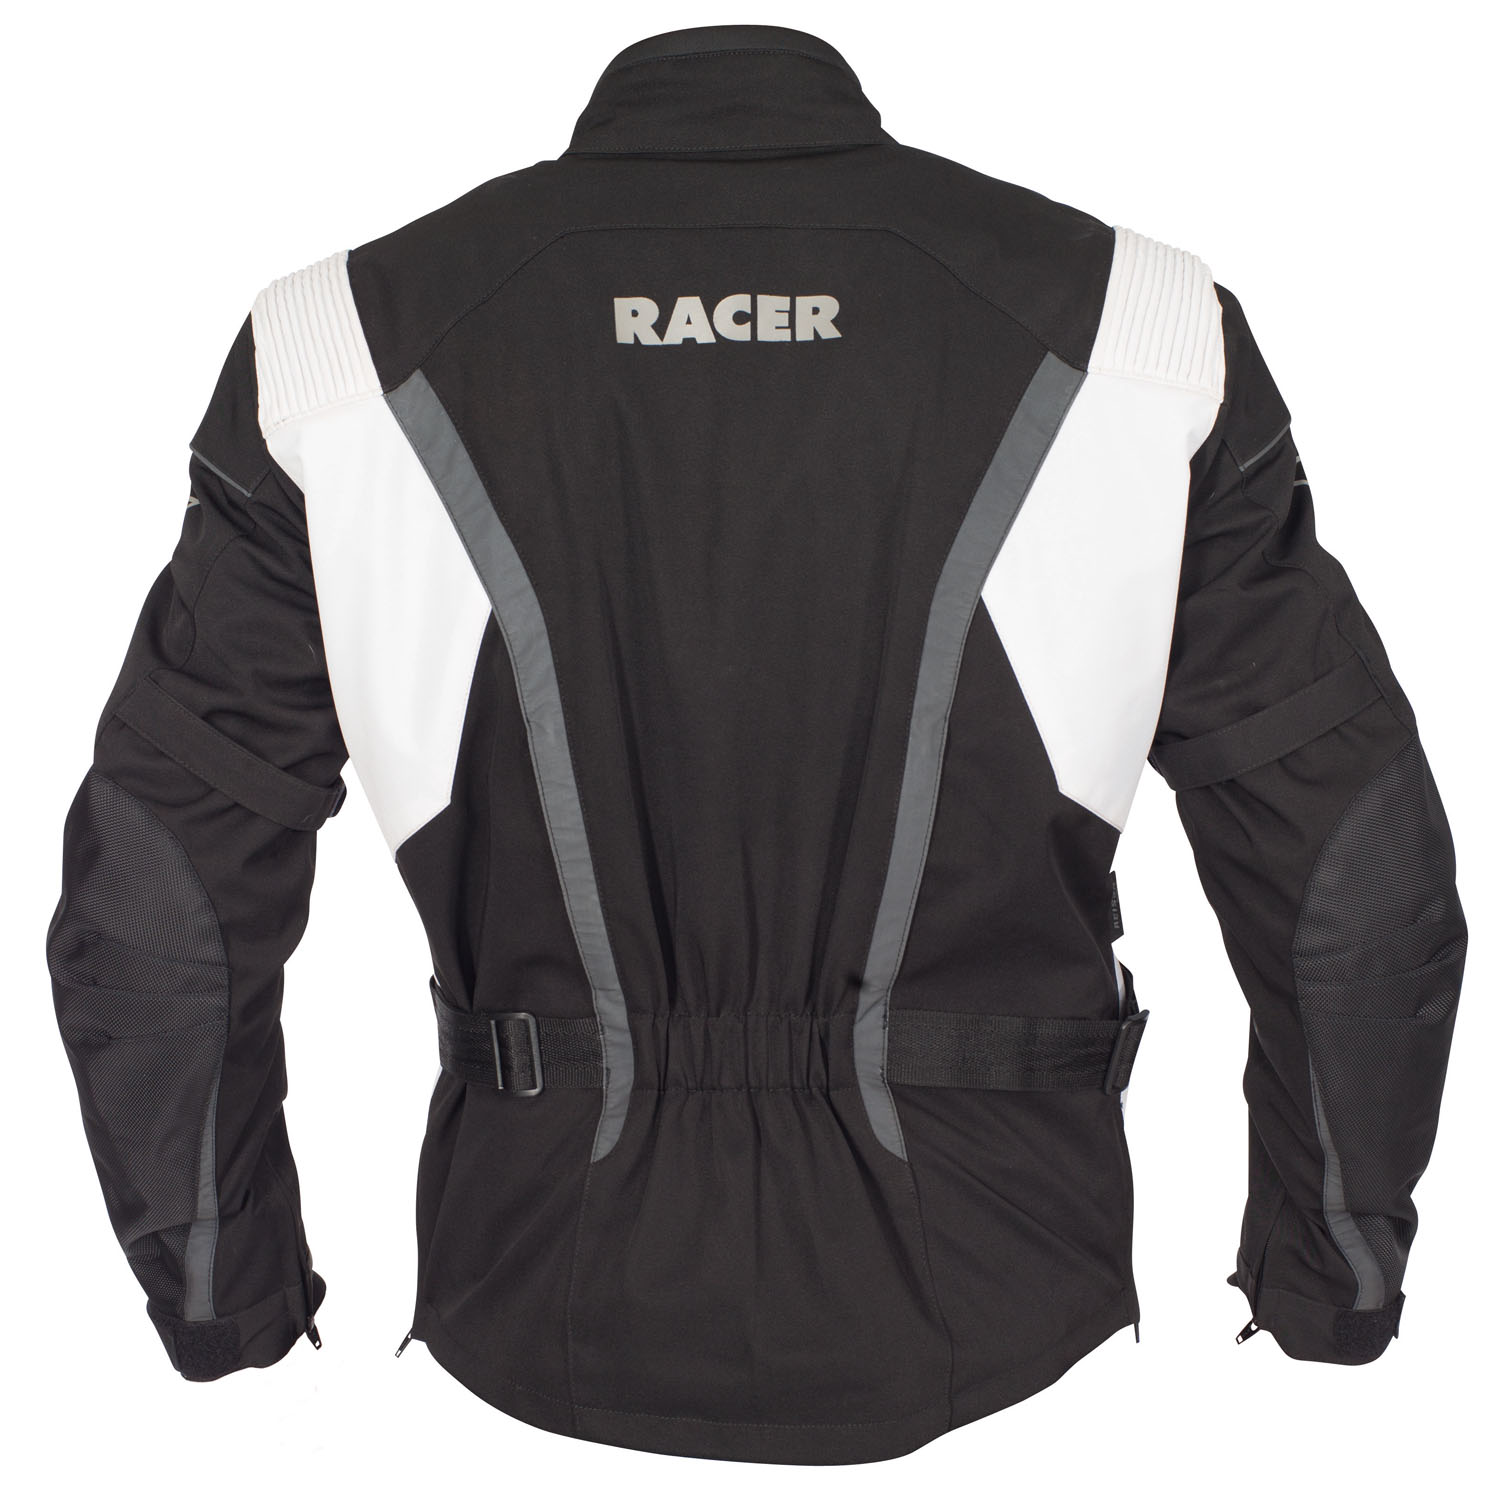 racer siena stretch herren motorradjacke bergr e touring. Black Bedroom Furniture Sets. Home Design Ideas